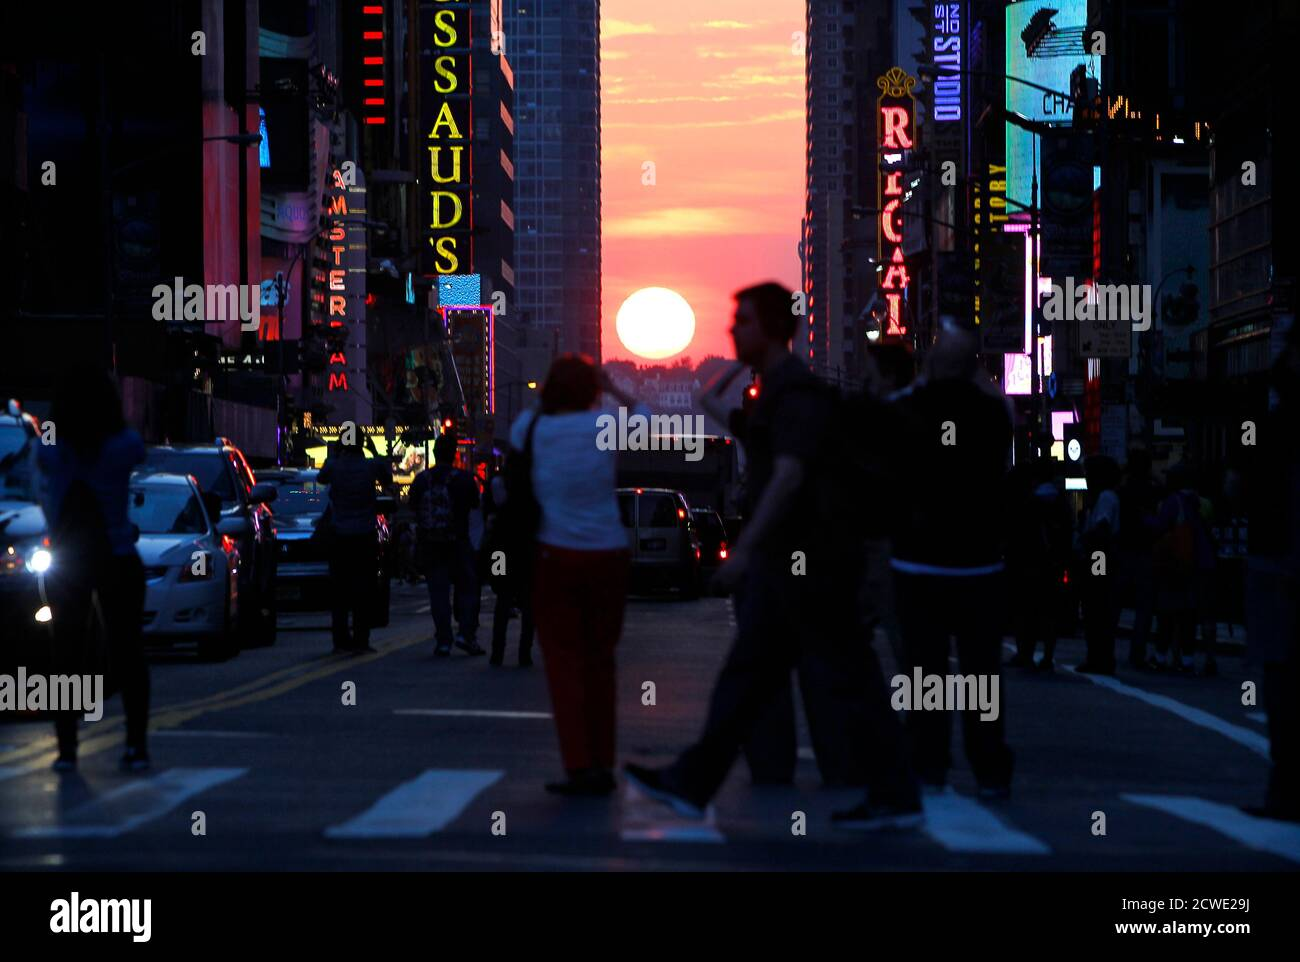 """People stop to view the sunset at 42nd Street during the biannual occurrence named """"Manhattanhenge"""" in New York, May 29, 2013. """"Manhattanhenge"""", named by astrophysicist Neil deGrasse Tyson, occurs when the setting sun aligns itself with the east-west grid of streets in Manhattan, allowing the sun to shine down all streets at the same time. REUTERS/Gary Hershorn (UNITED STATES - Tags: SOCIETY ENVIRONMENT) Foto Stock"""